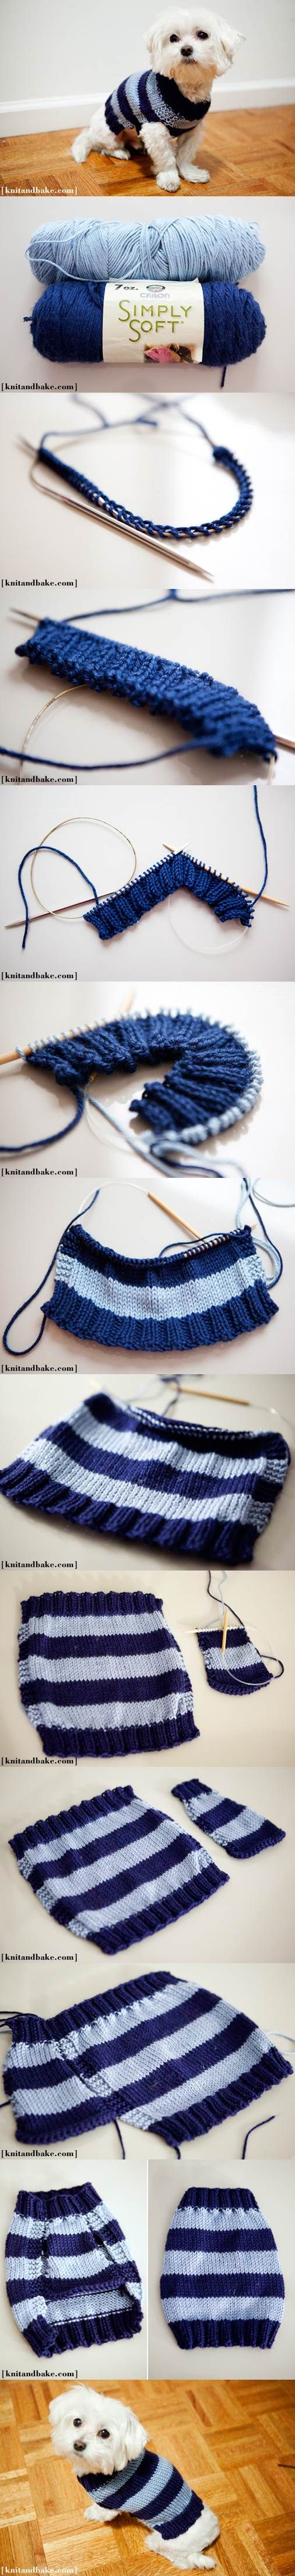 DIY Easy Knitted Dog Sweater 2 | Tejido | Pinterest | Mascotas, Ropa ...